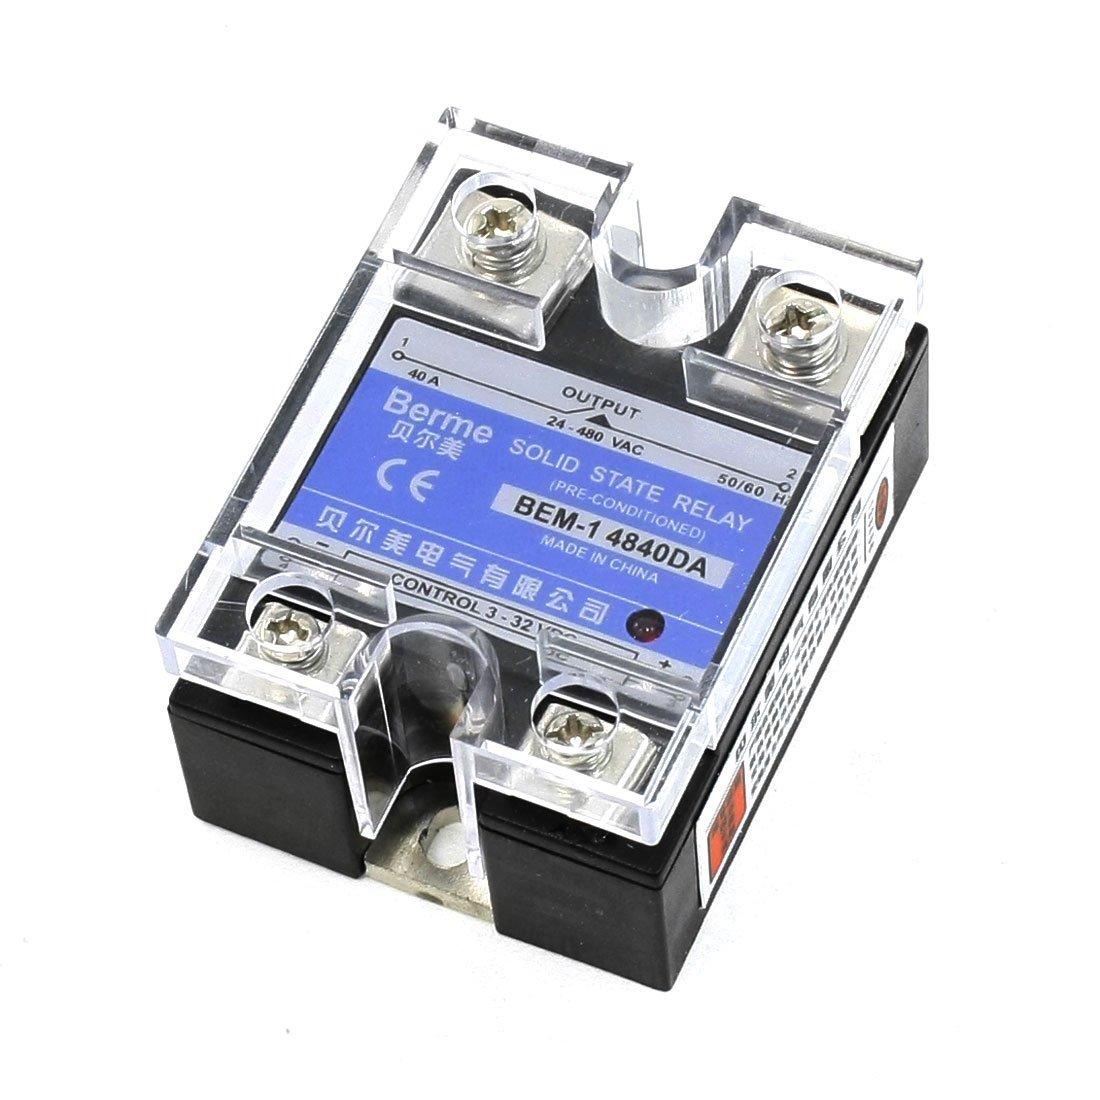 24-480V AC DC to 3-32VDC Output Single Phase SSR Solid State Relay 40A dc ac single phase ssr solid state relay 120a 3 32v dc 24 480v ac